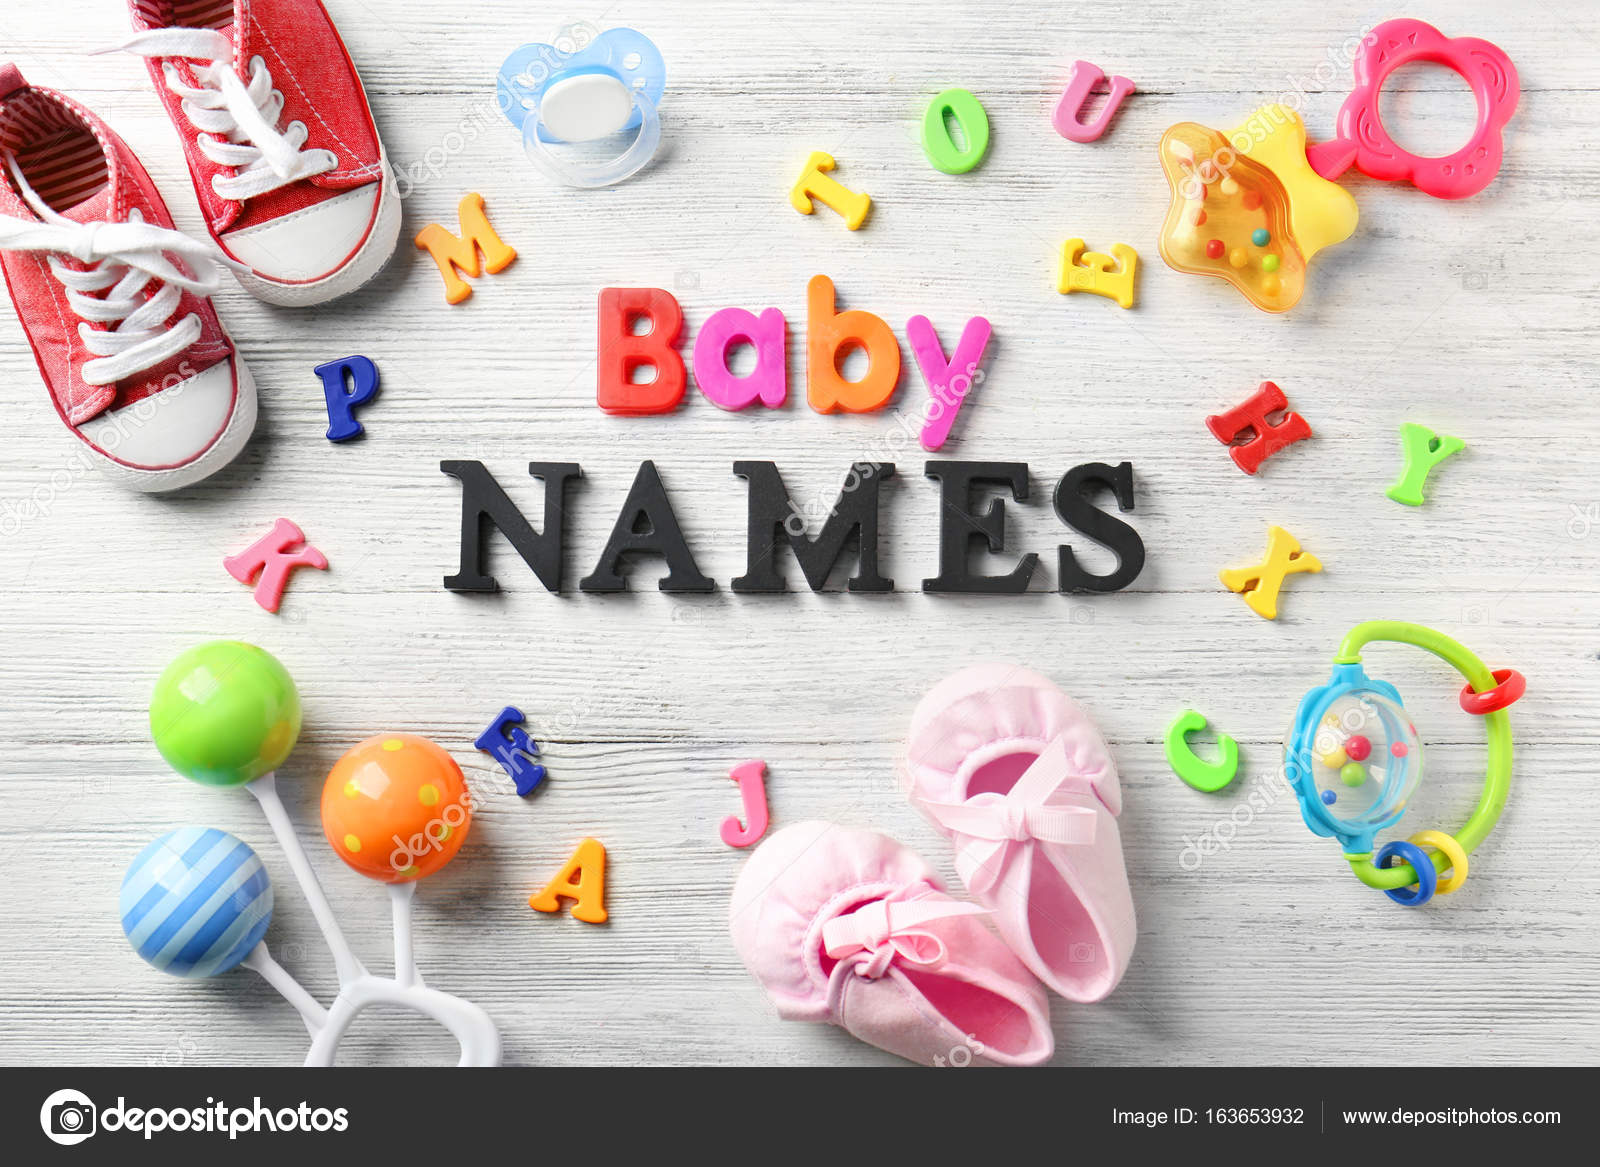 ec0de3b7e8fe Composition with text BABY NAMES on wooden background — Stock Photo ...